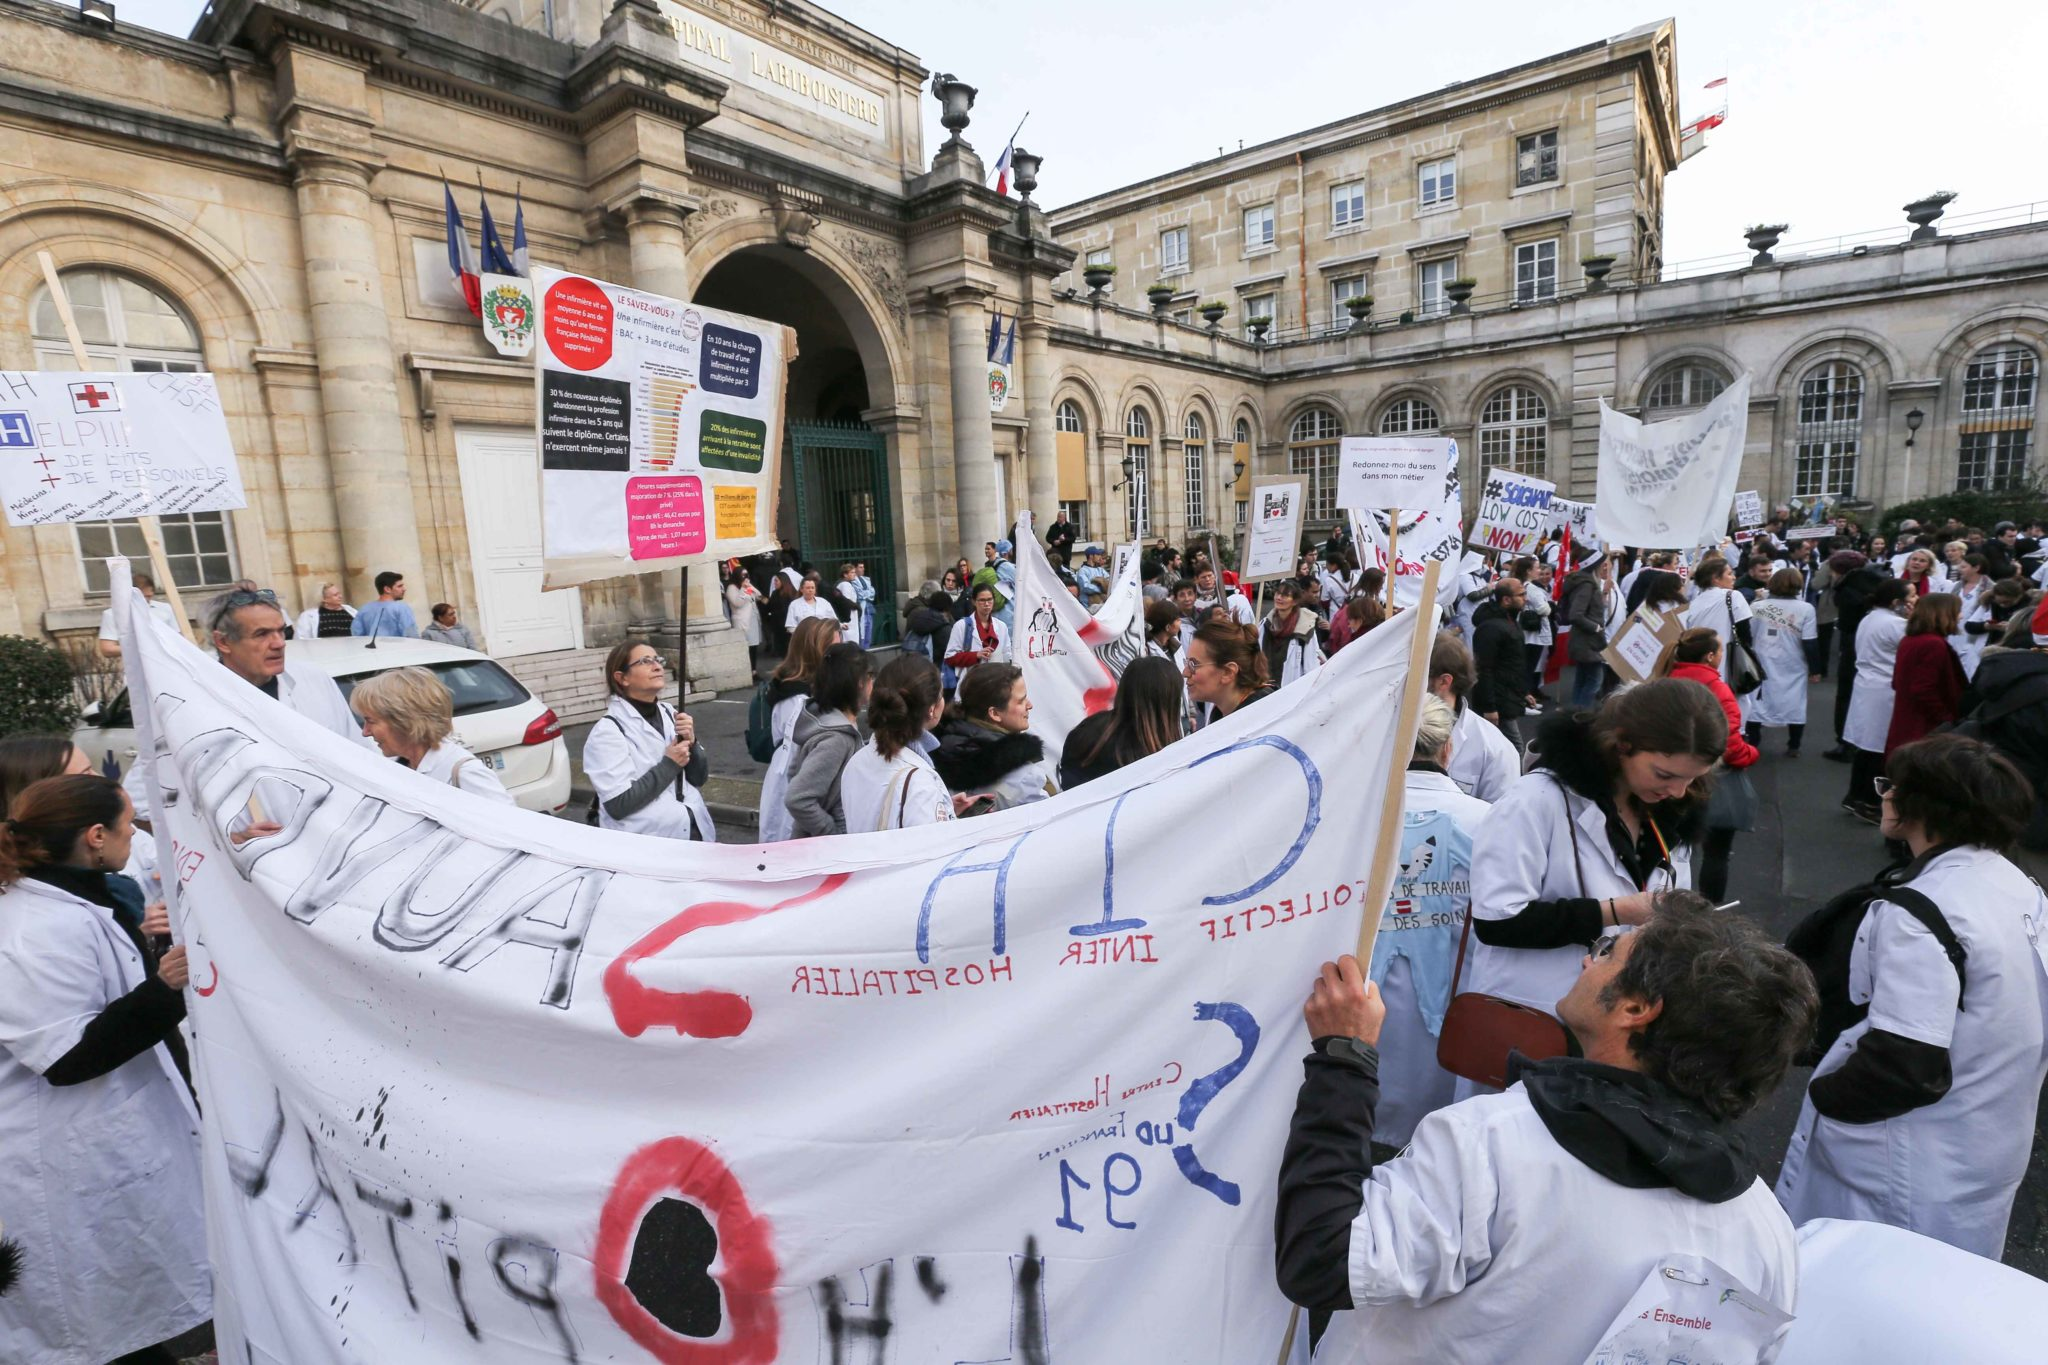 Gathering outside the Lariboisiere hospital in Paris on December 17, 2019 to protest in favour of public hospital in order to demand more resources for the hospital as part of a third countrywide day of multi-sector protests over a government pensions over